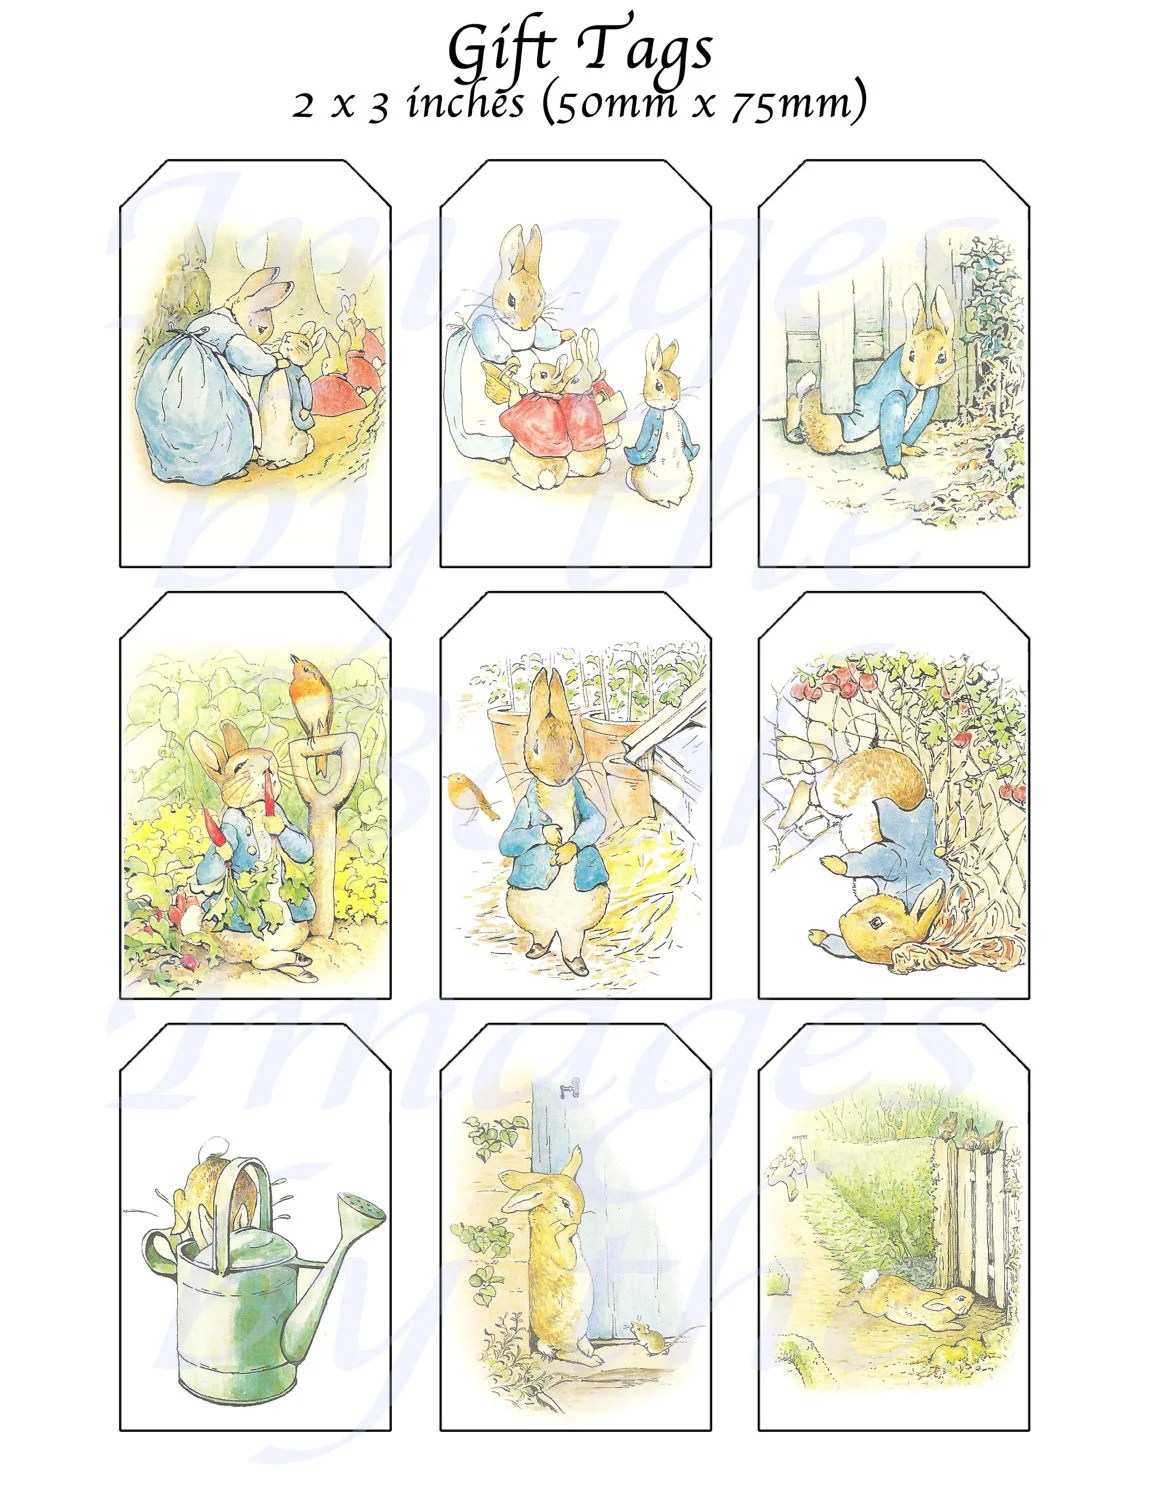 Beatrix Potter S Peter Rabbit Printables T Tags 2 X 3 Inches From Imagesbythebook On Etsy